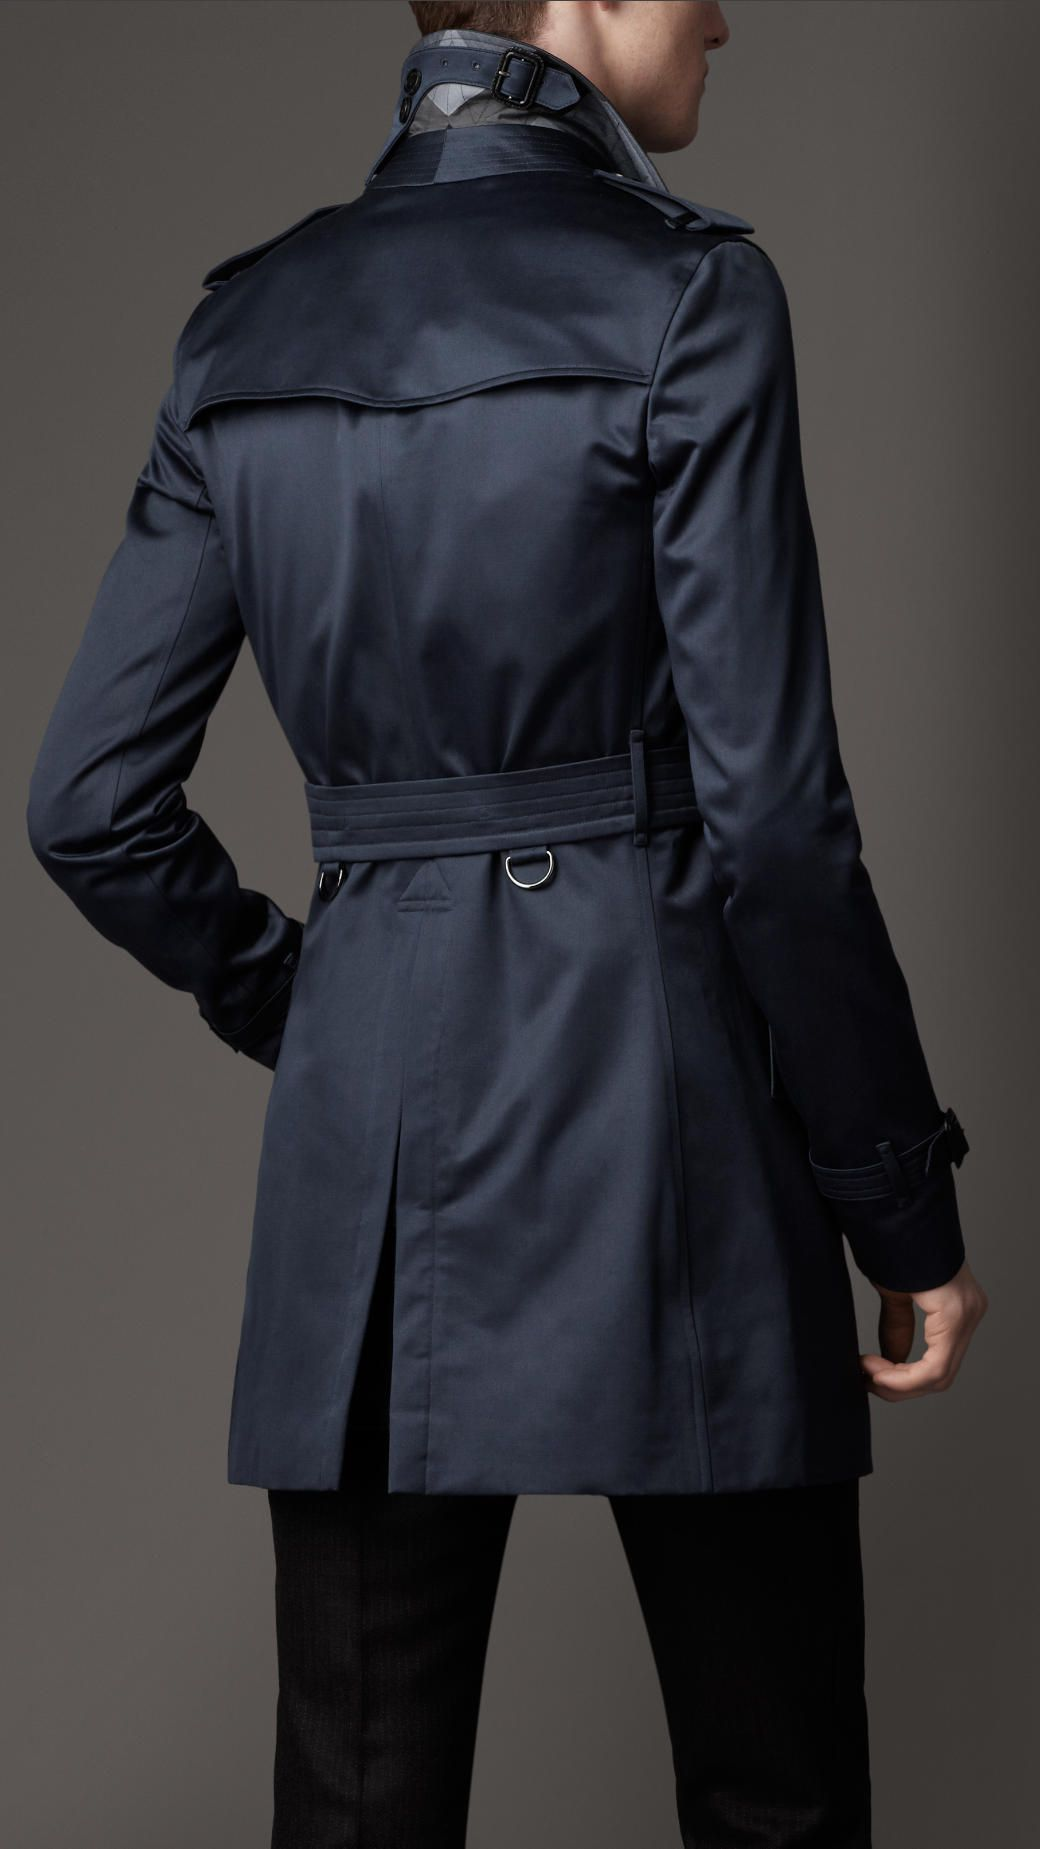 Burberry Blue Midlength Heritage Cotton Trench Coat Trench Coat Trench Coat Men Coat